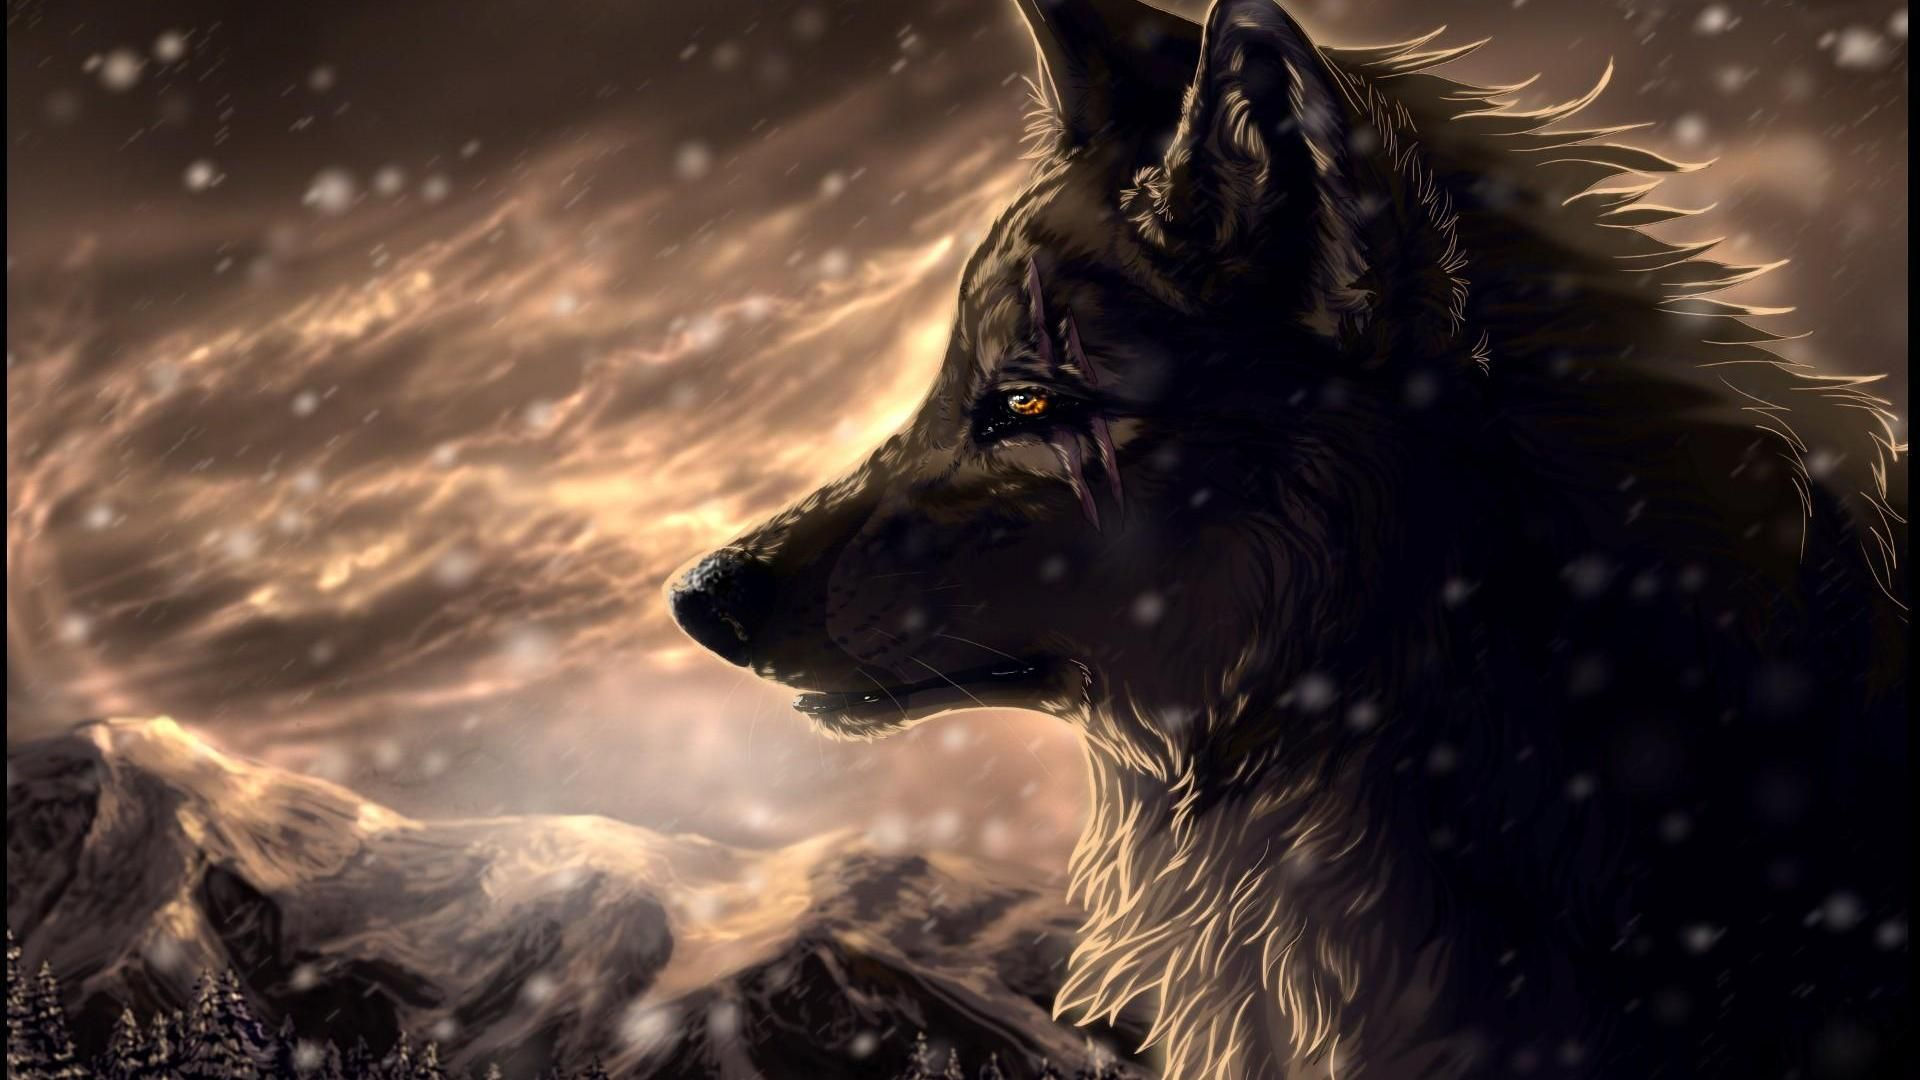 Anime hd wallpapers free download latest anime hd - Anime wolf wallpaper ...